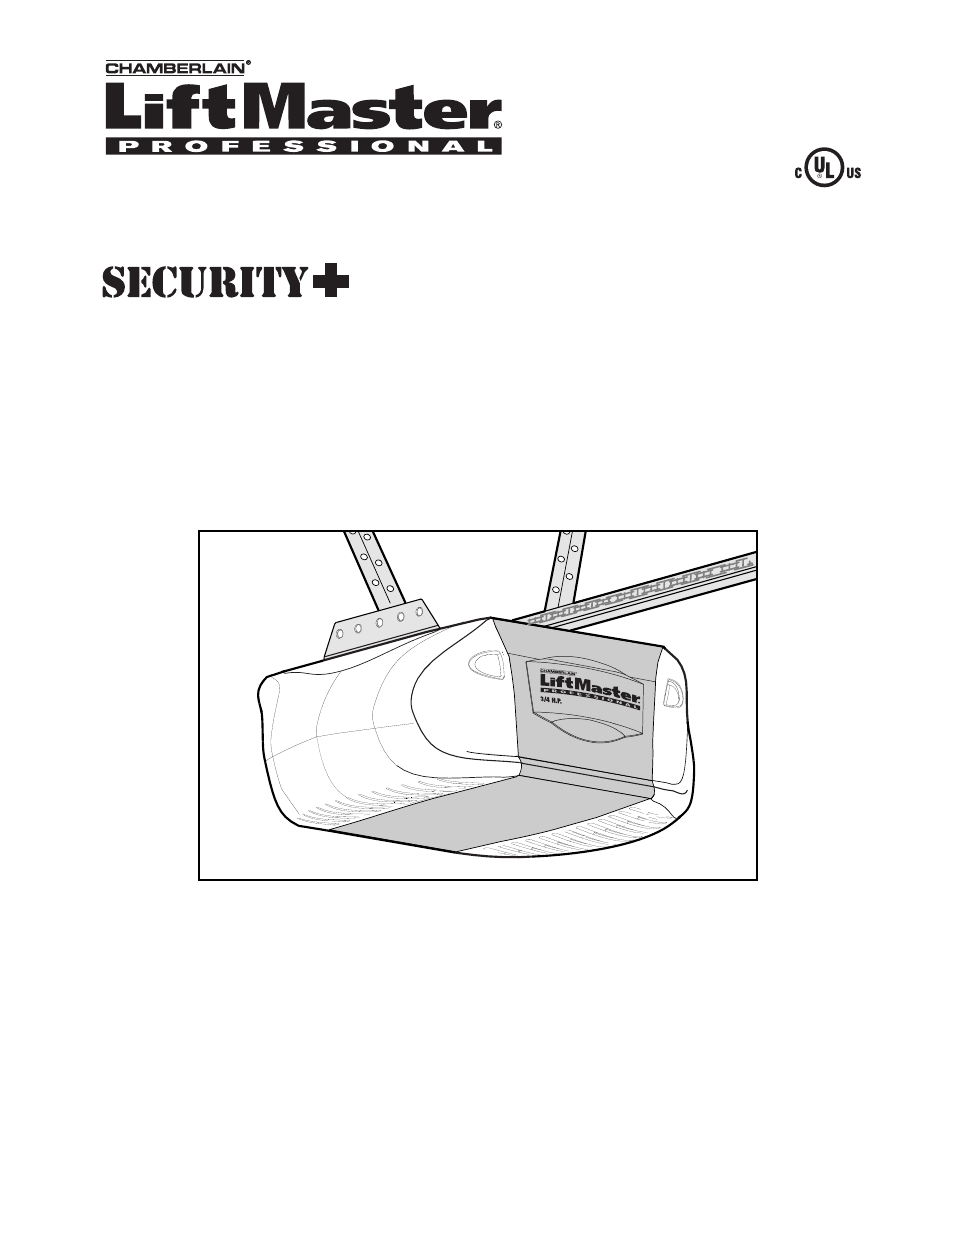 Download Chamberlain garage door opener owner's manuals